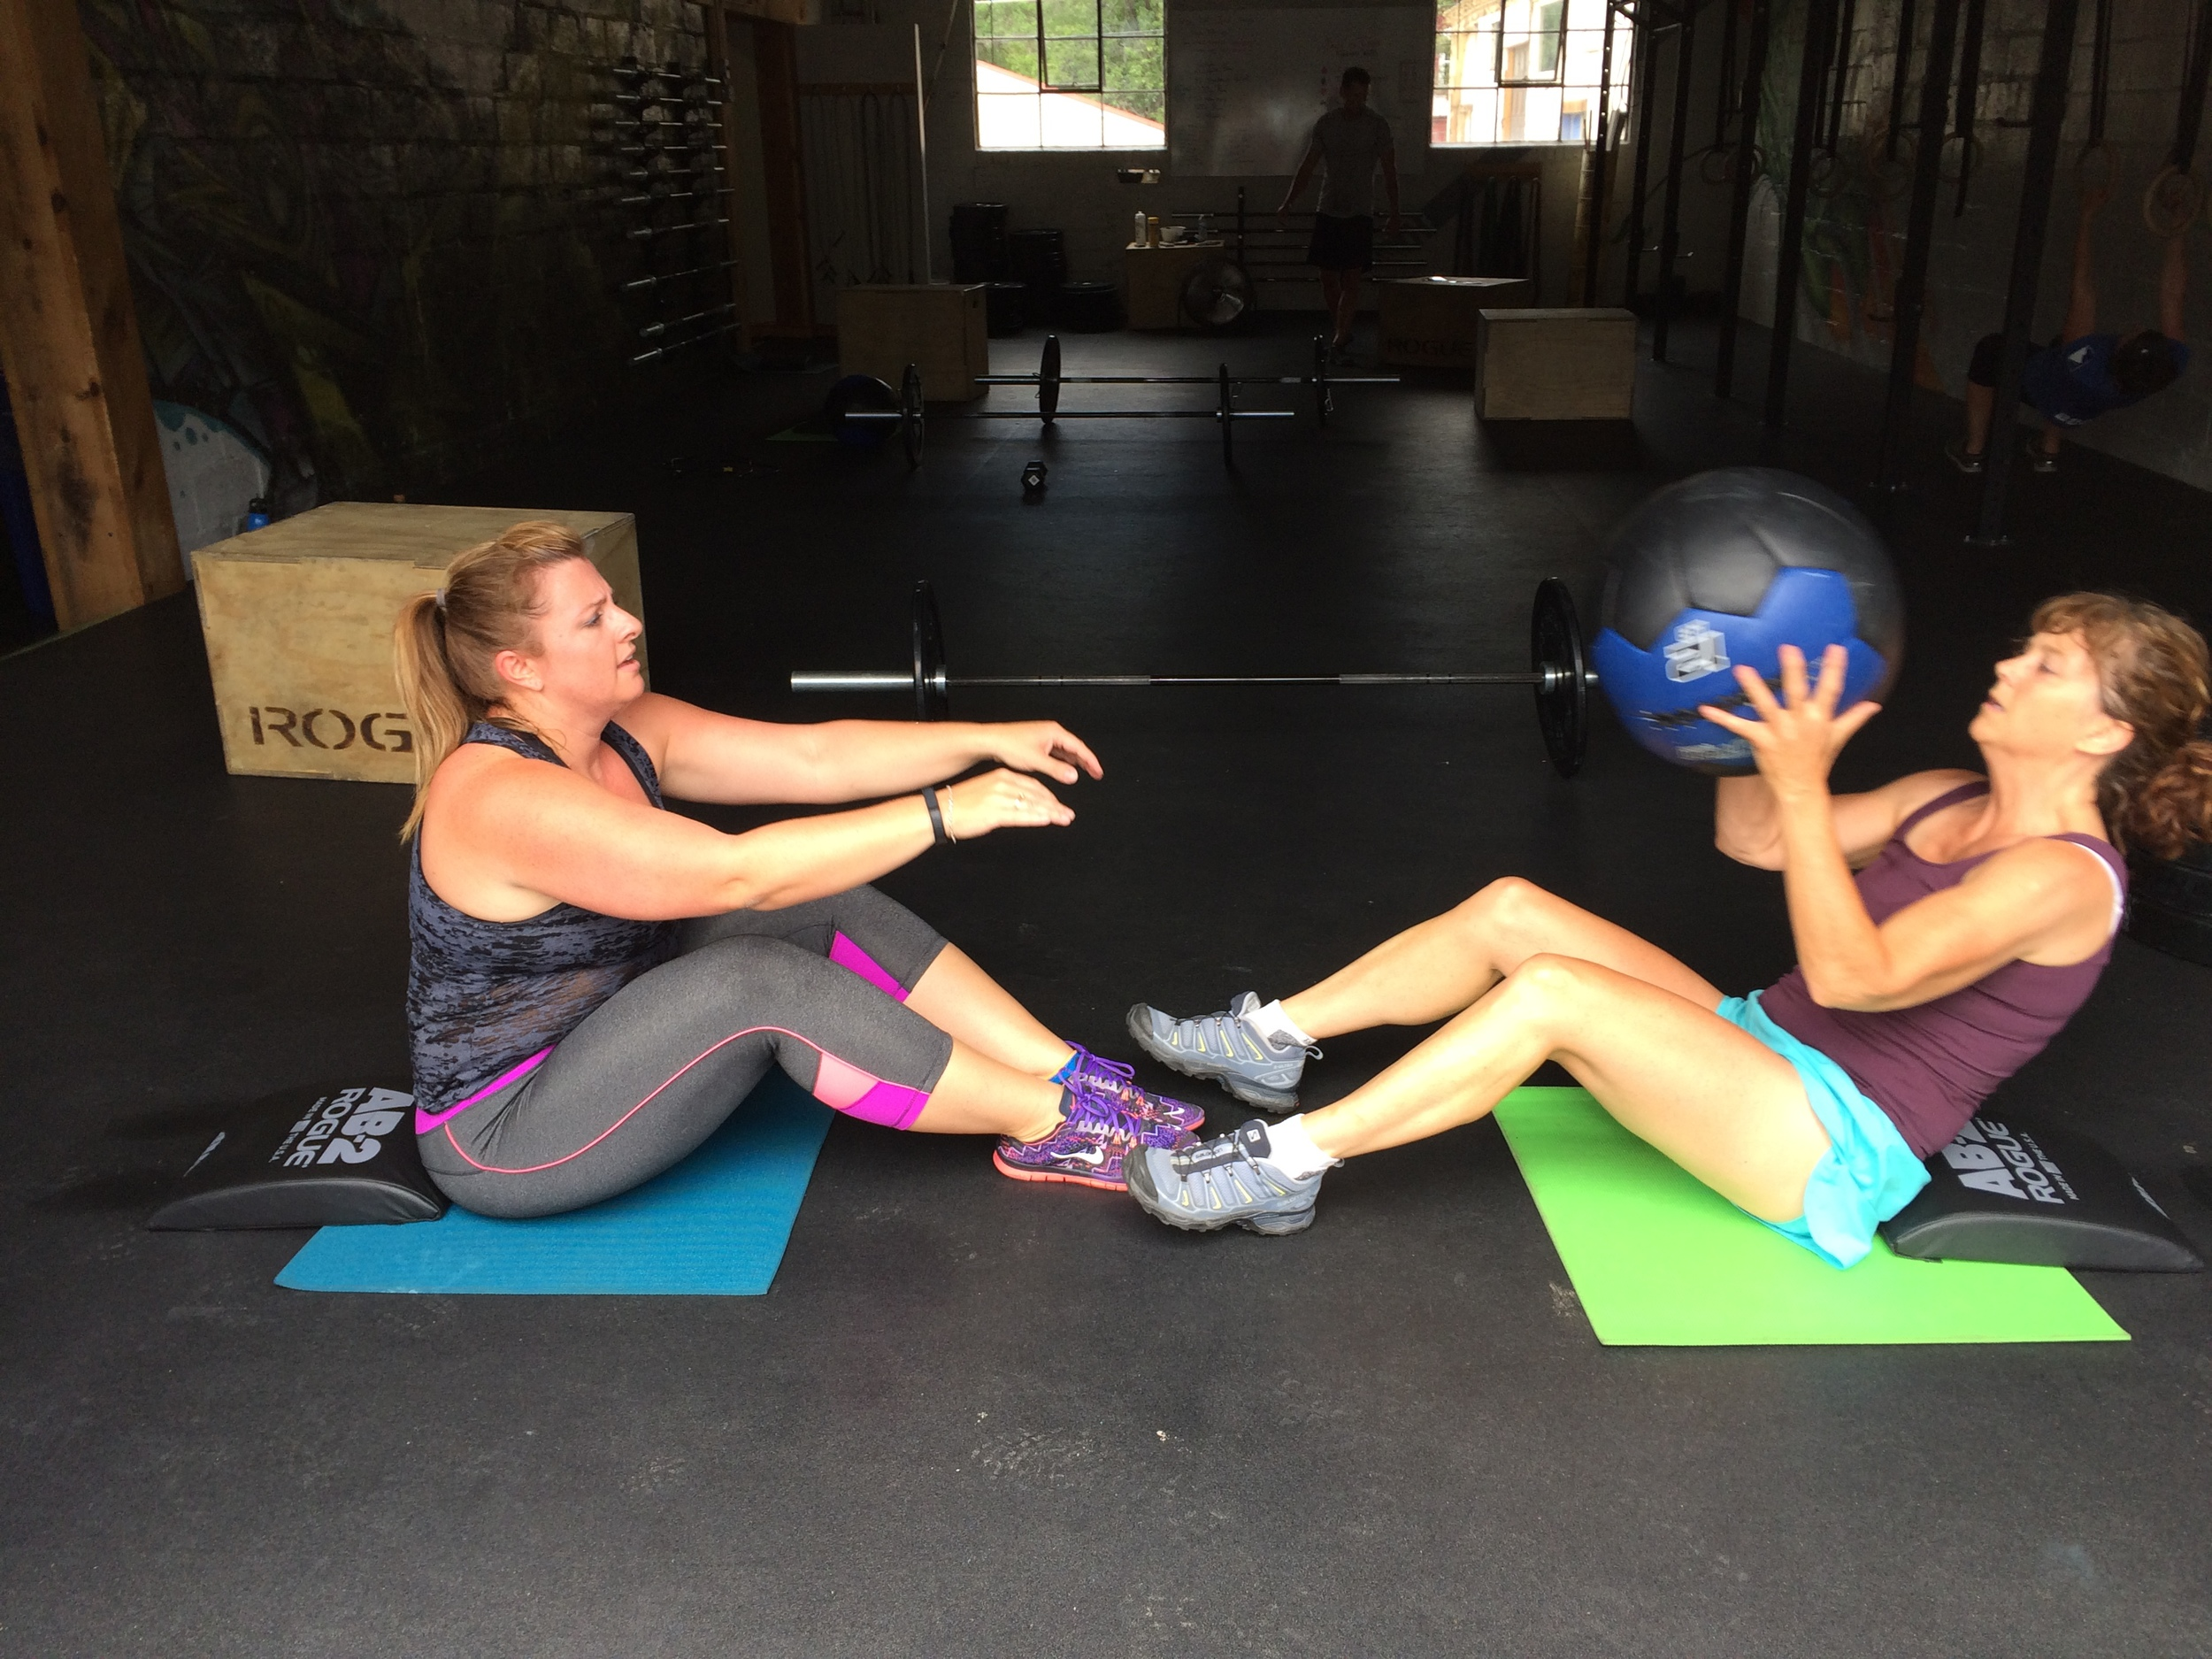 Roseann and Laura taking on the Deck of Cards Workout last week.